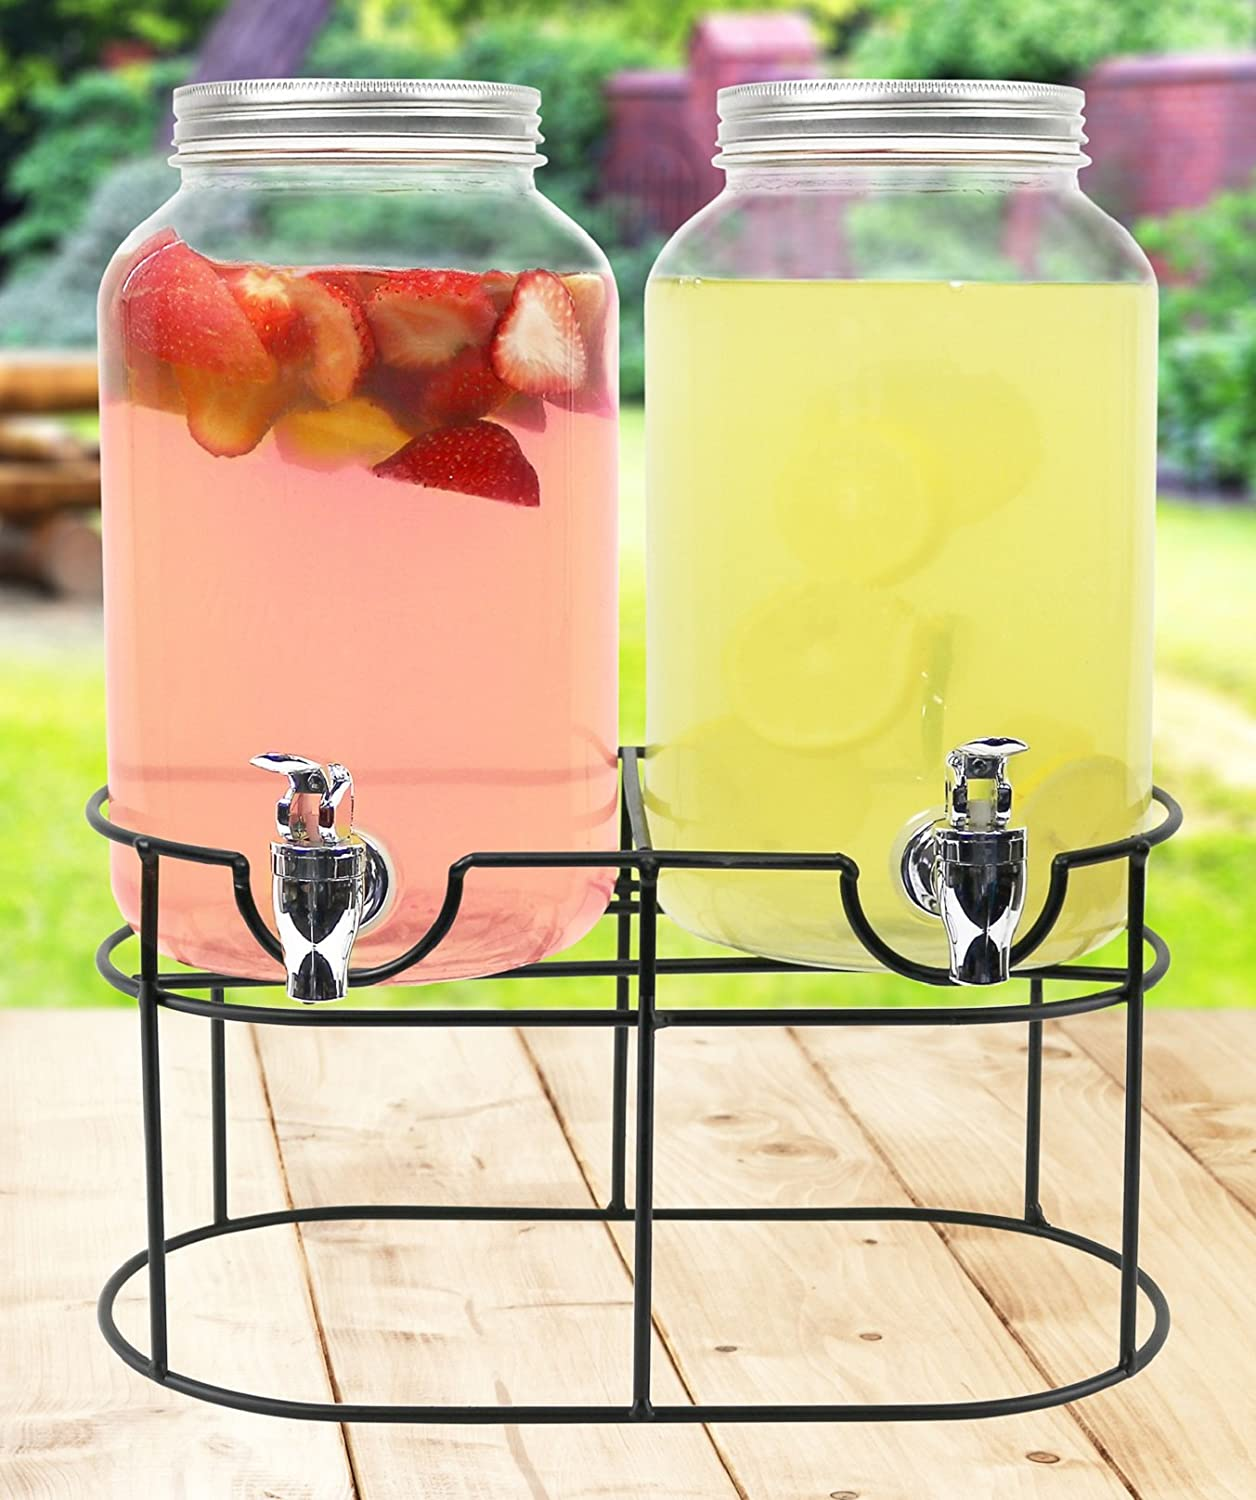 Estilo Glass Mason Jar Double Beverage Drink Dispenser On Metal Stand With Leak Free Spigot, 1 Gallon Each